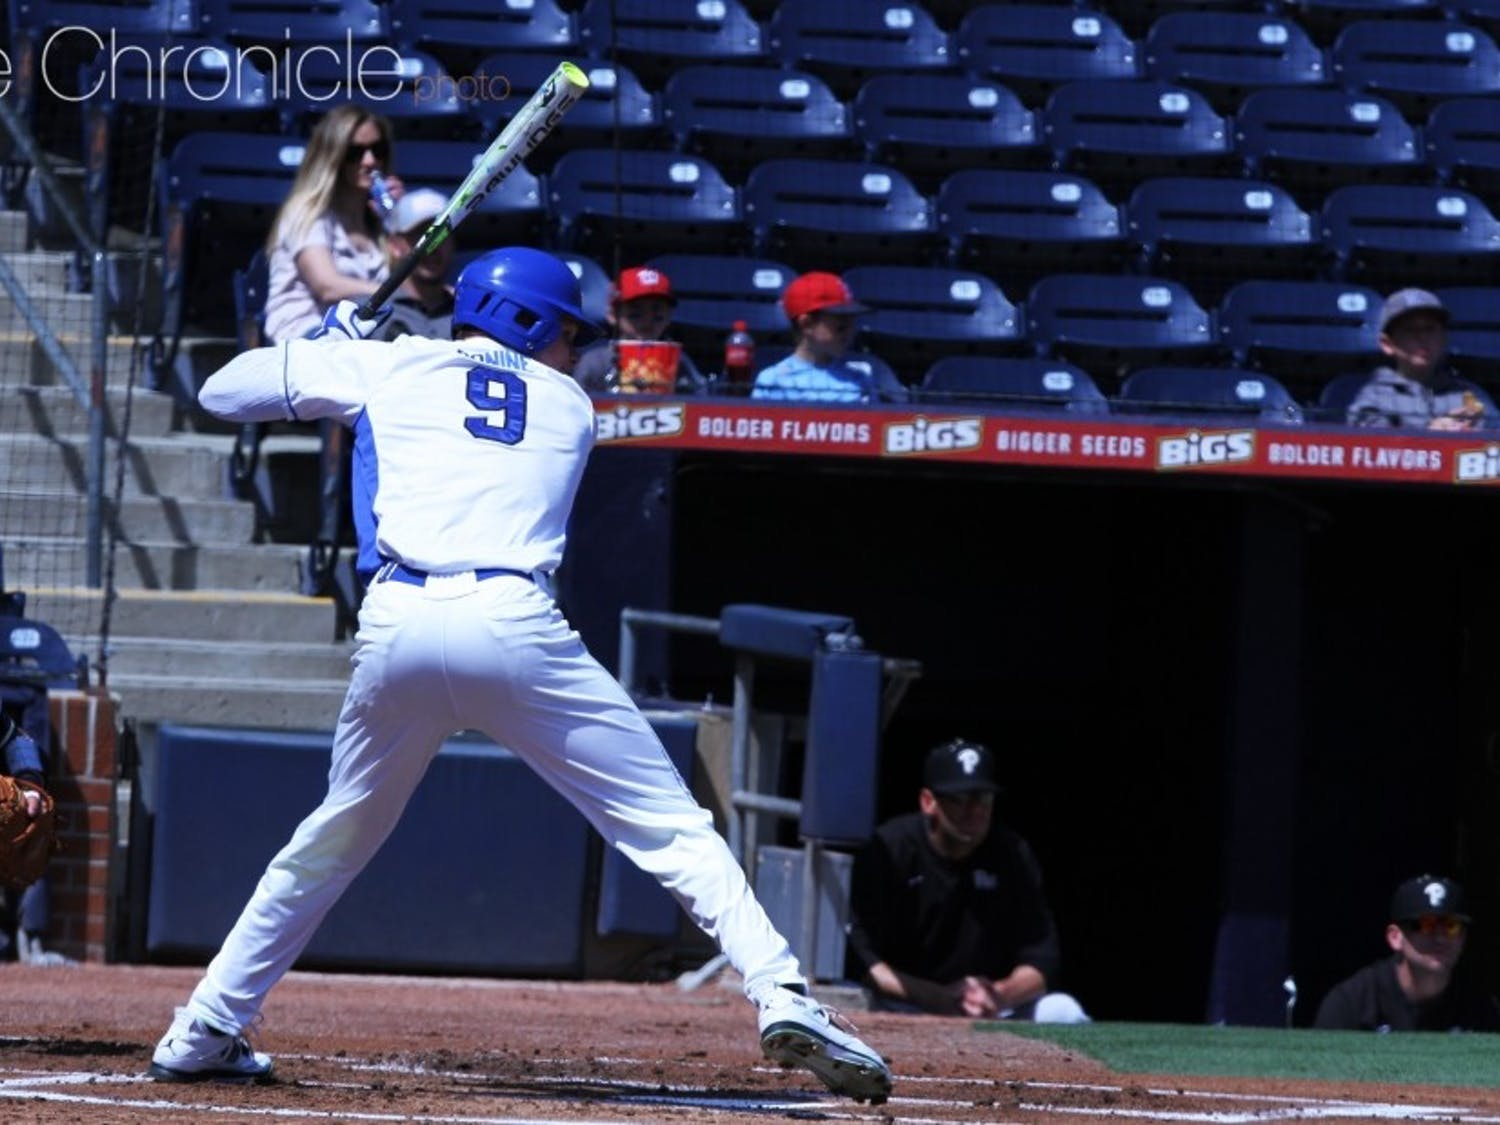 Griffin Conine blasted a three-run homer to break Tuesday's game open for his 13th long ball of the season.